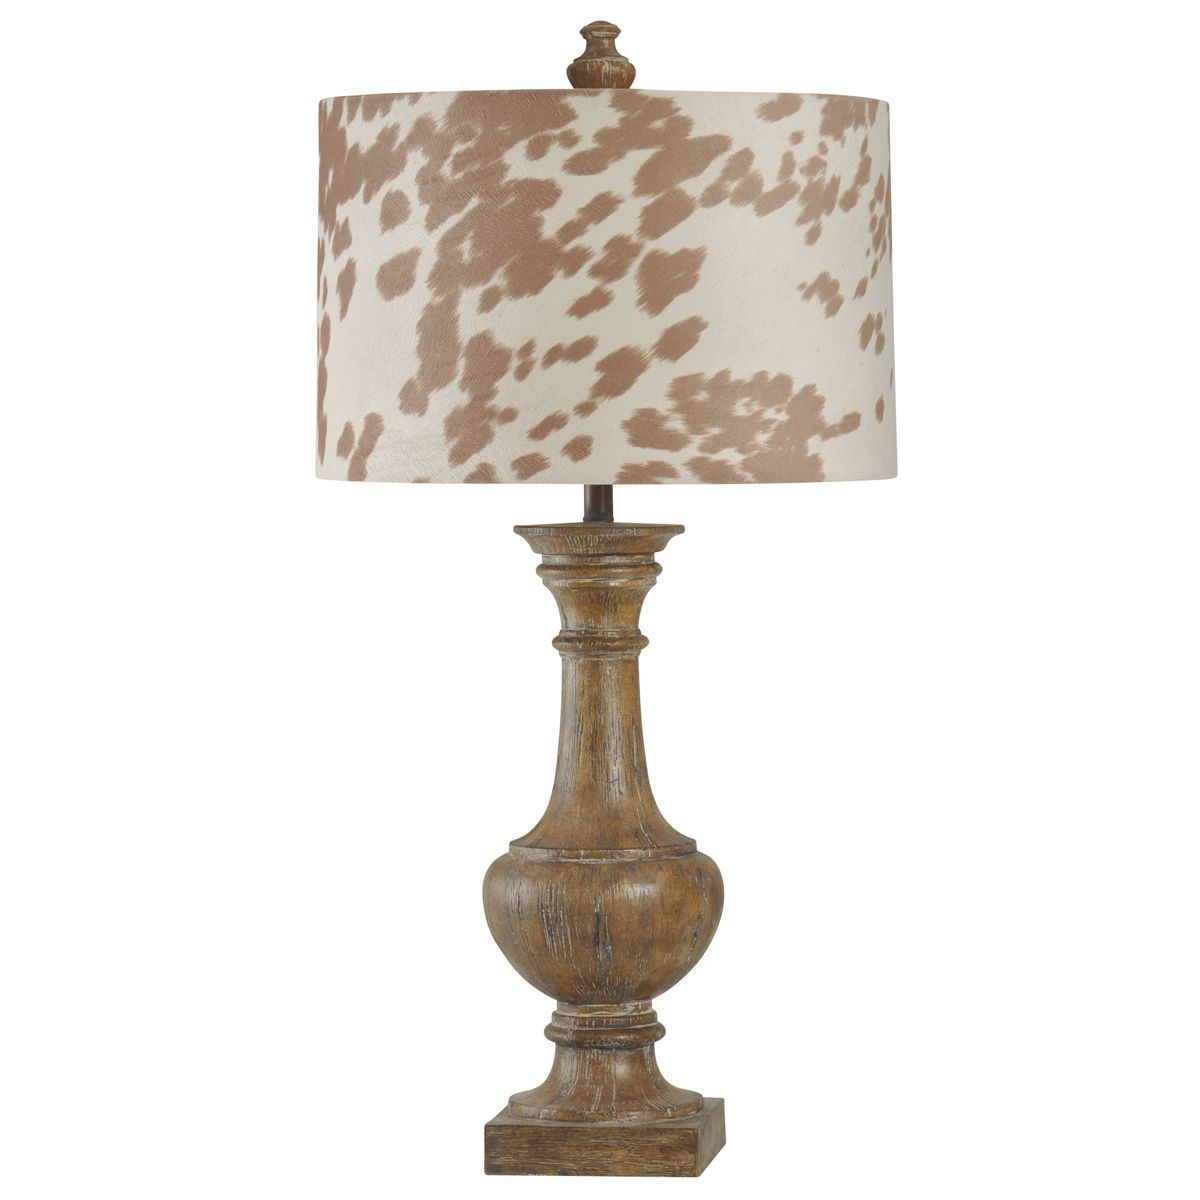 Baluster Table Lamp with Cowhide Print Shade